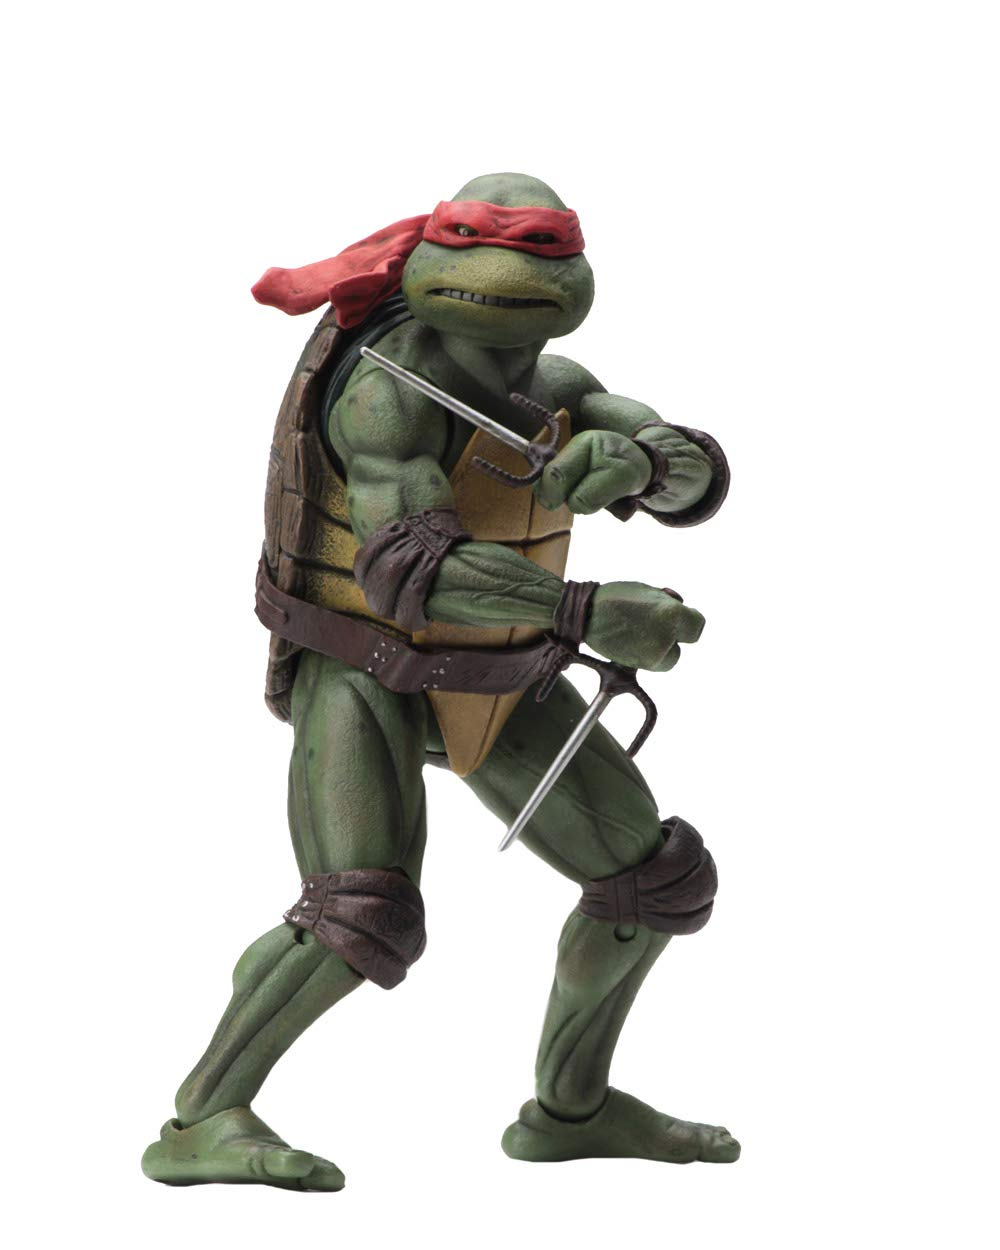 Teenage Mutant Ninja Turtles (1990) - Raphael Action Figure